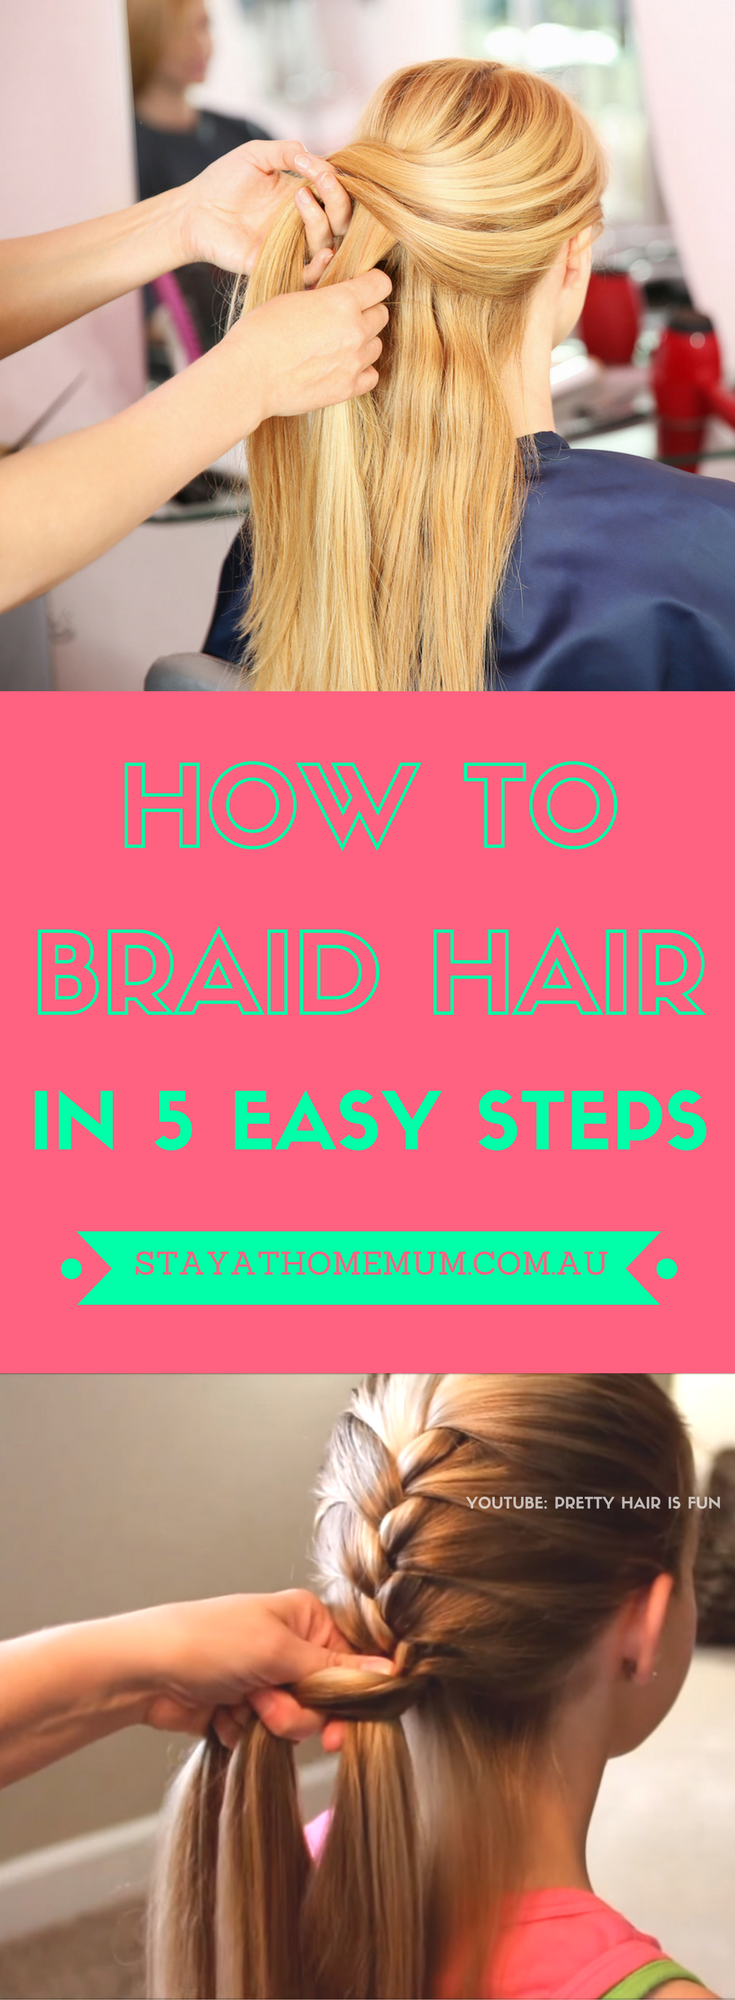 Here are our step by step instructions on how to to do a basic braid